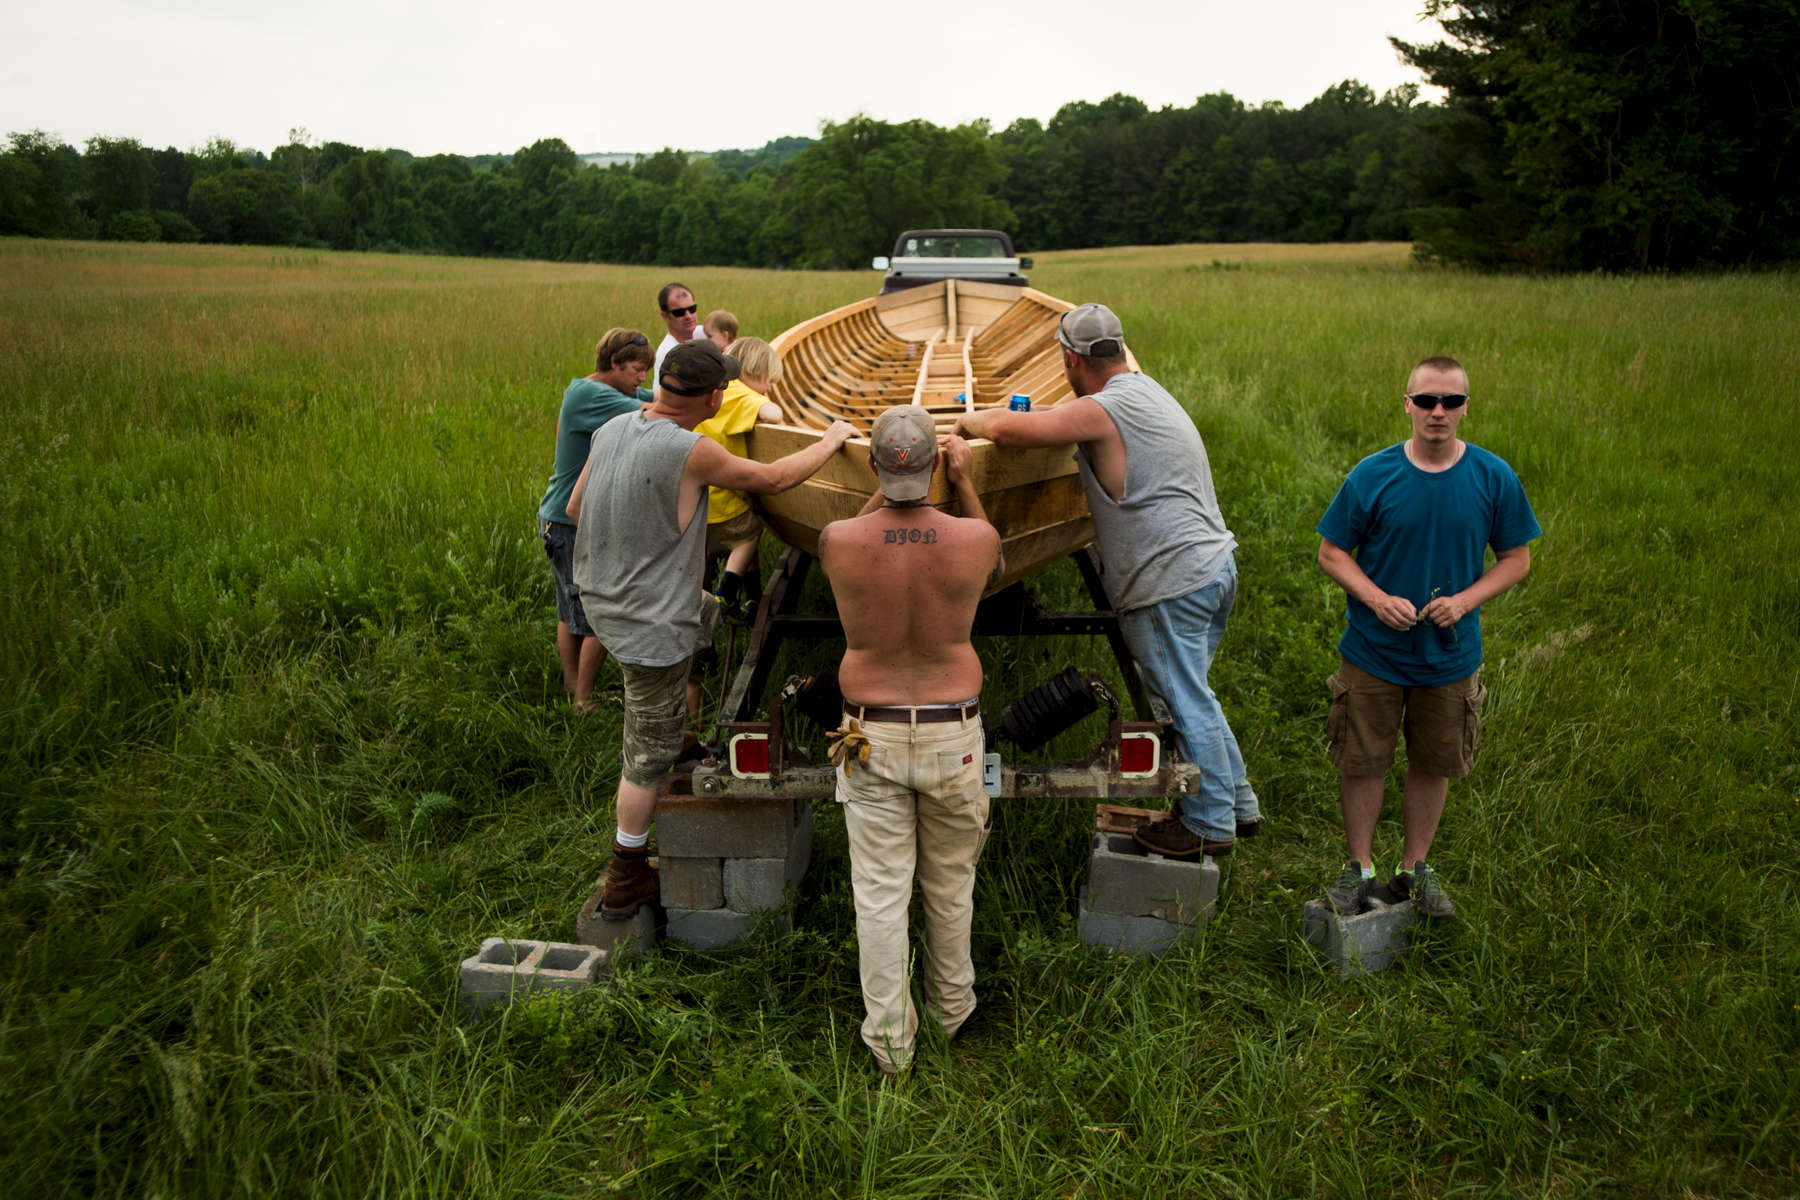 Members of the local batteau community came together to flip the Lizzie Langley over and load her onto a trailer for transportation to the James River.